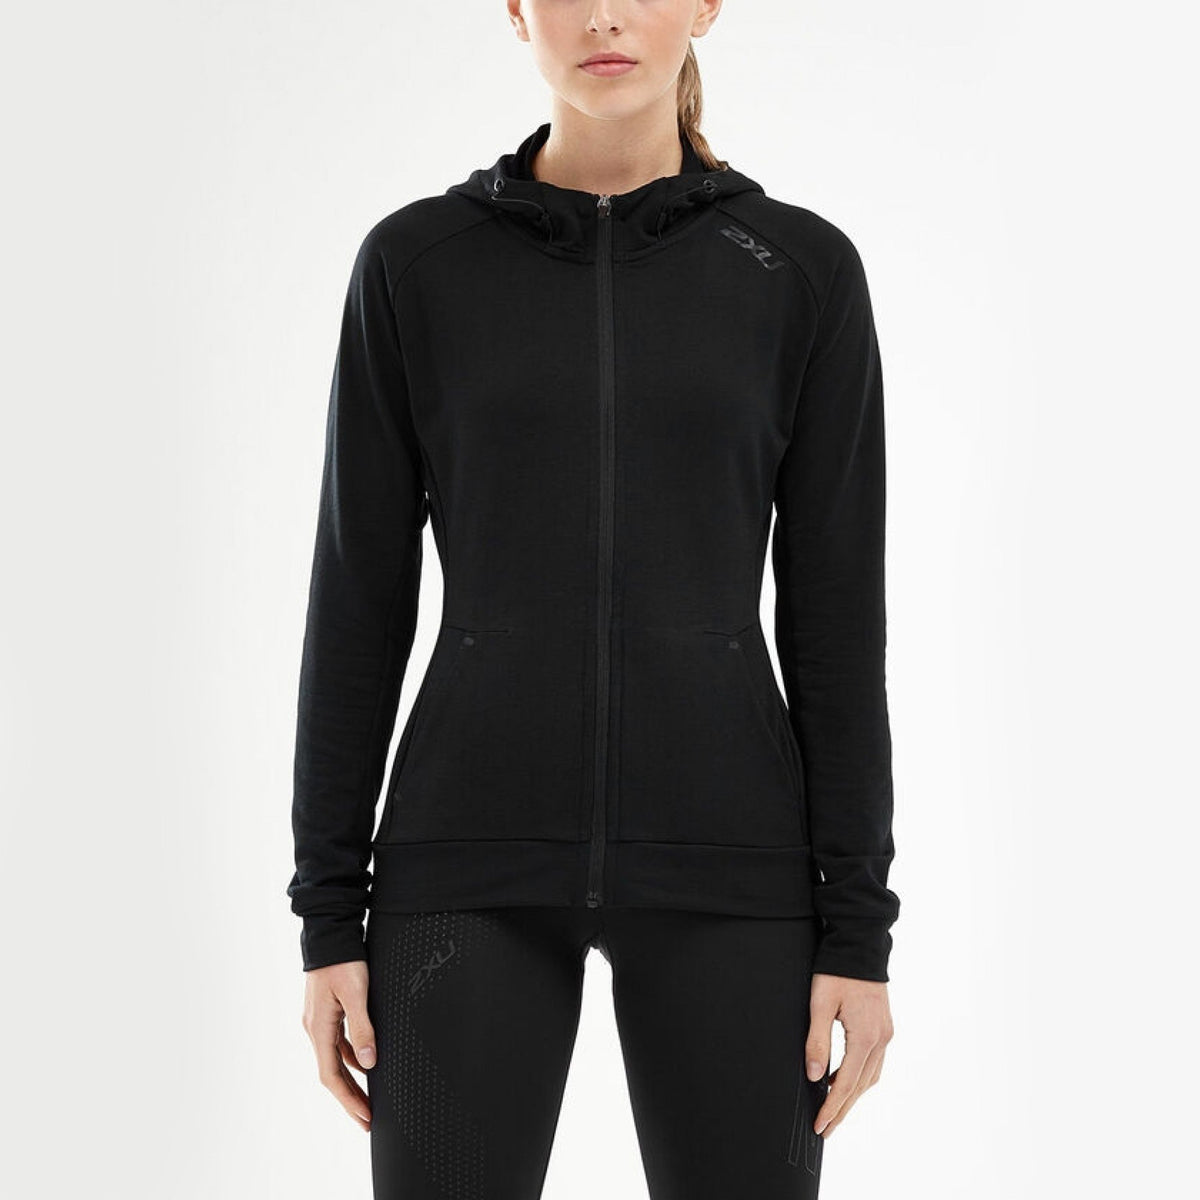 2XU Transit Zip Hoodie Womens - Sole Motive